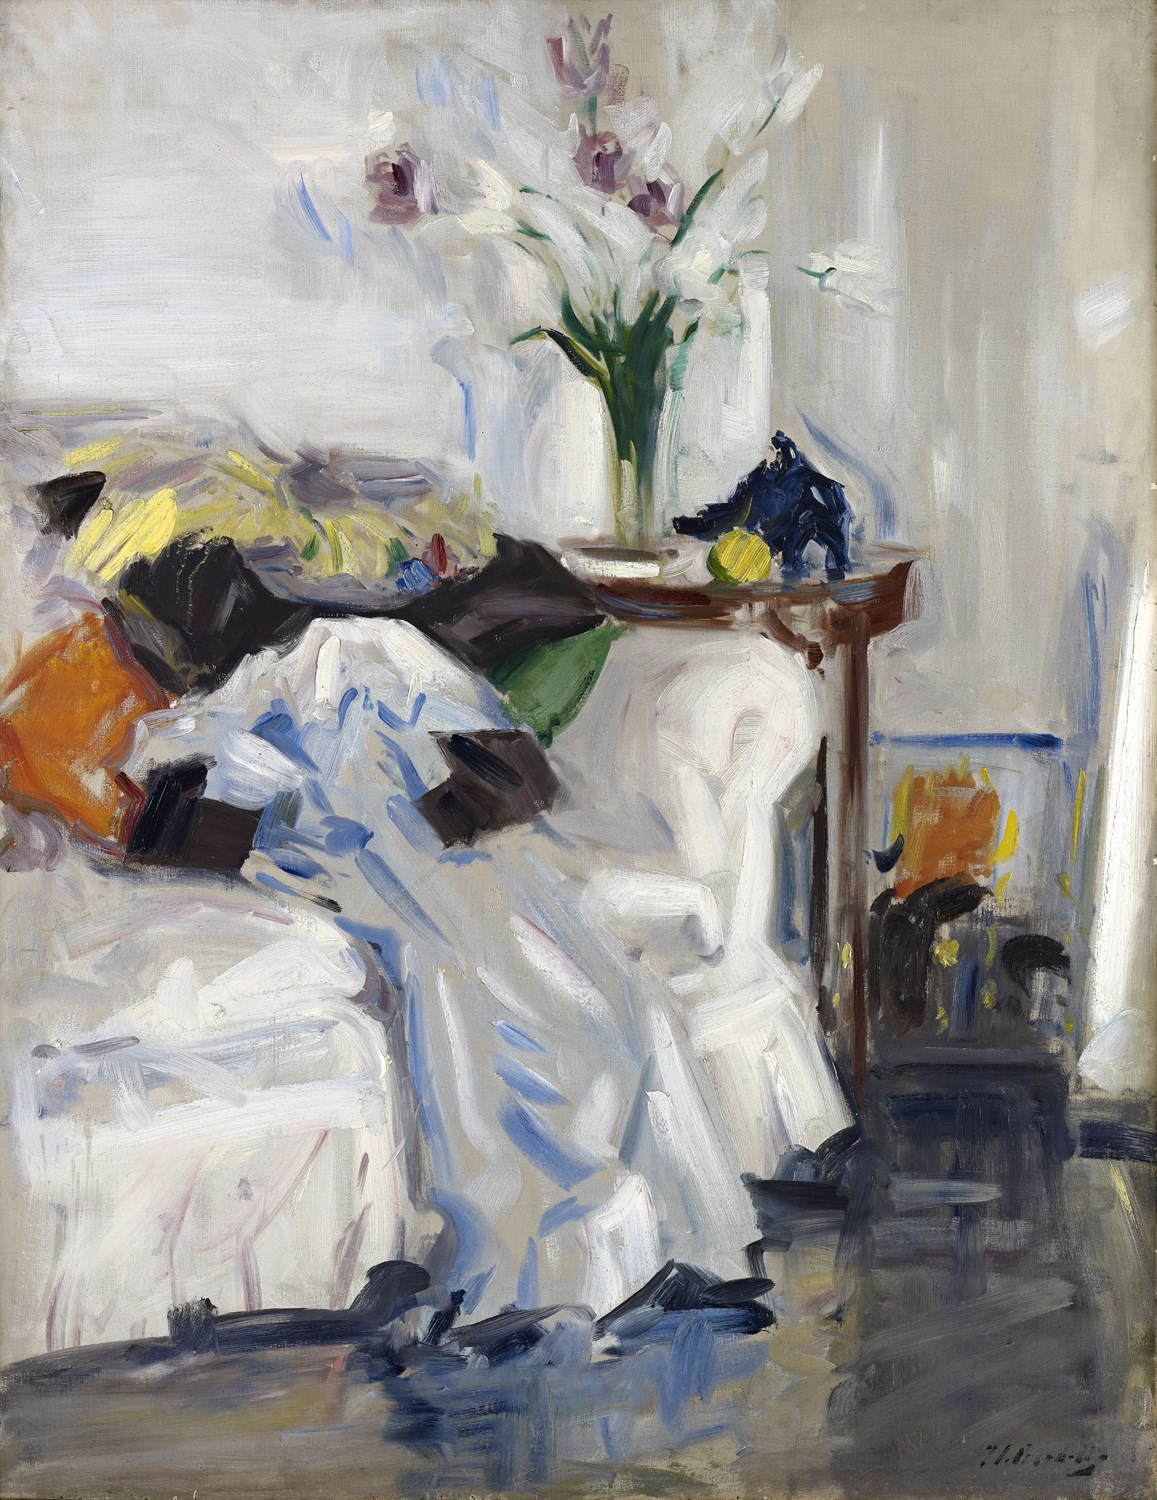 Lot 197 - FRANCIS CAMPBELL BOILEAU CADELL R.S.A., R.S.W (SCOTTISH 1883-1937)